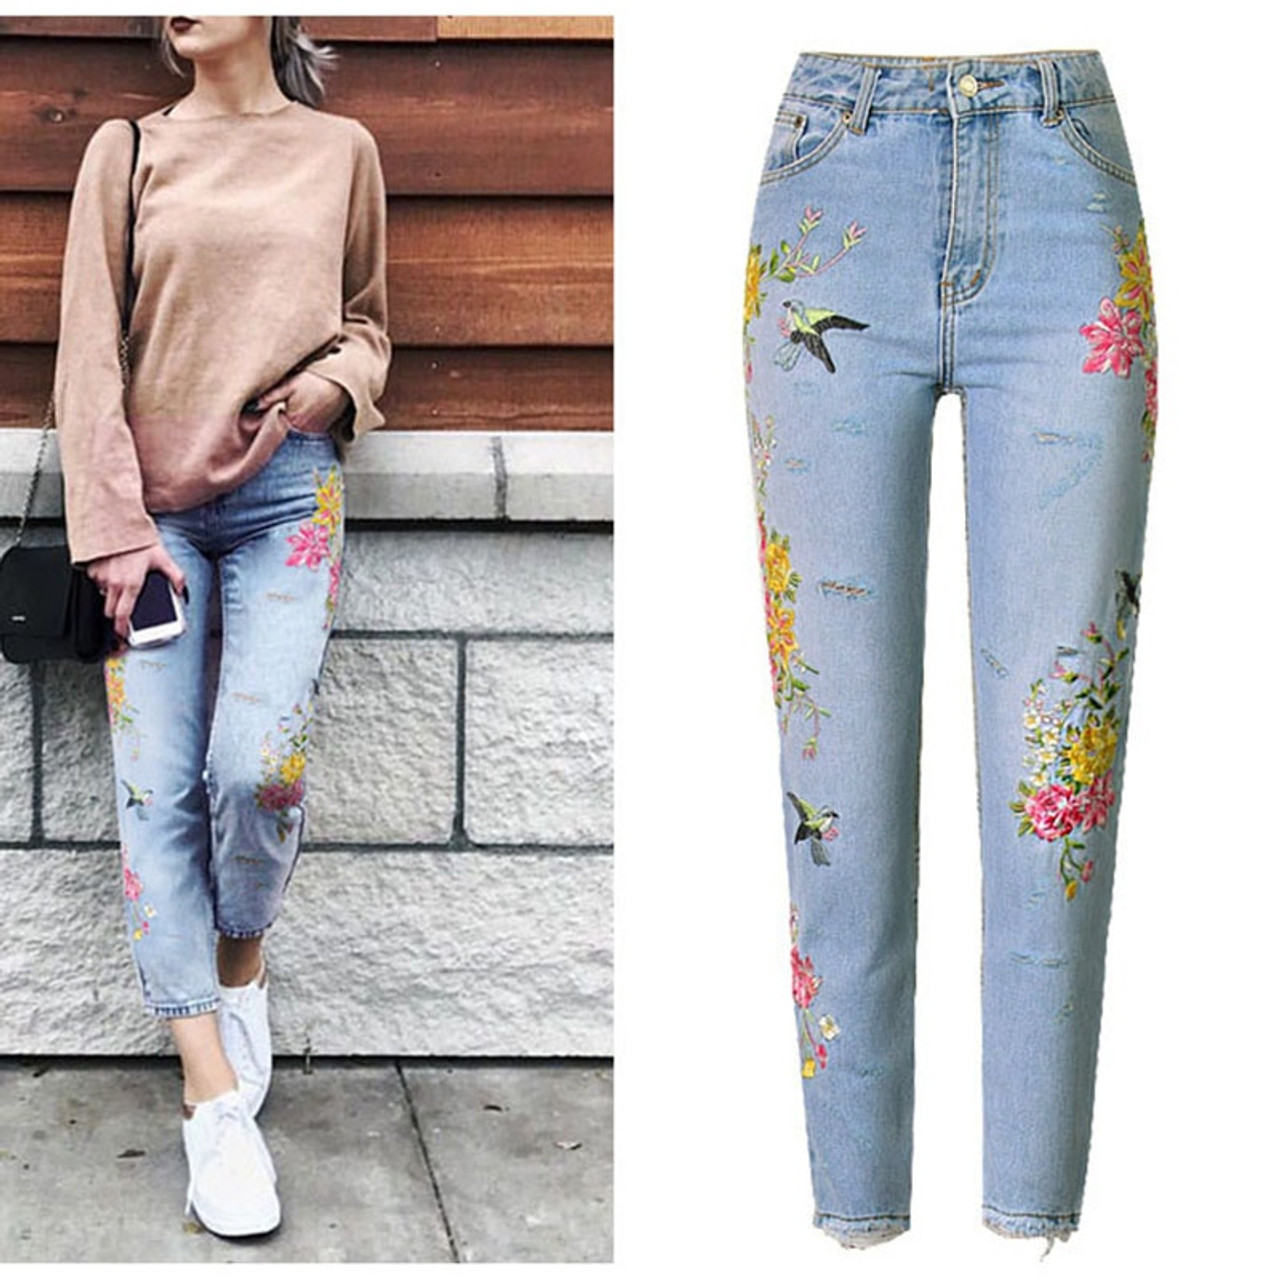 New Fashion Jeans Women's Clothing 3D Floral Embroidery Denim ...